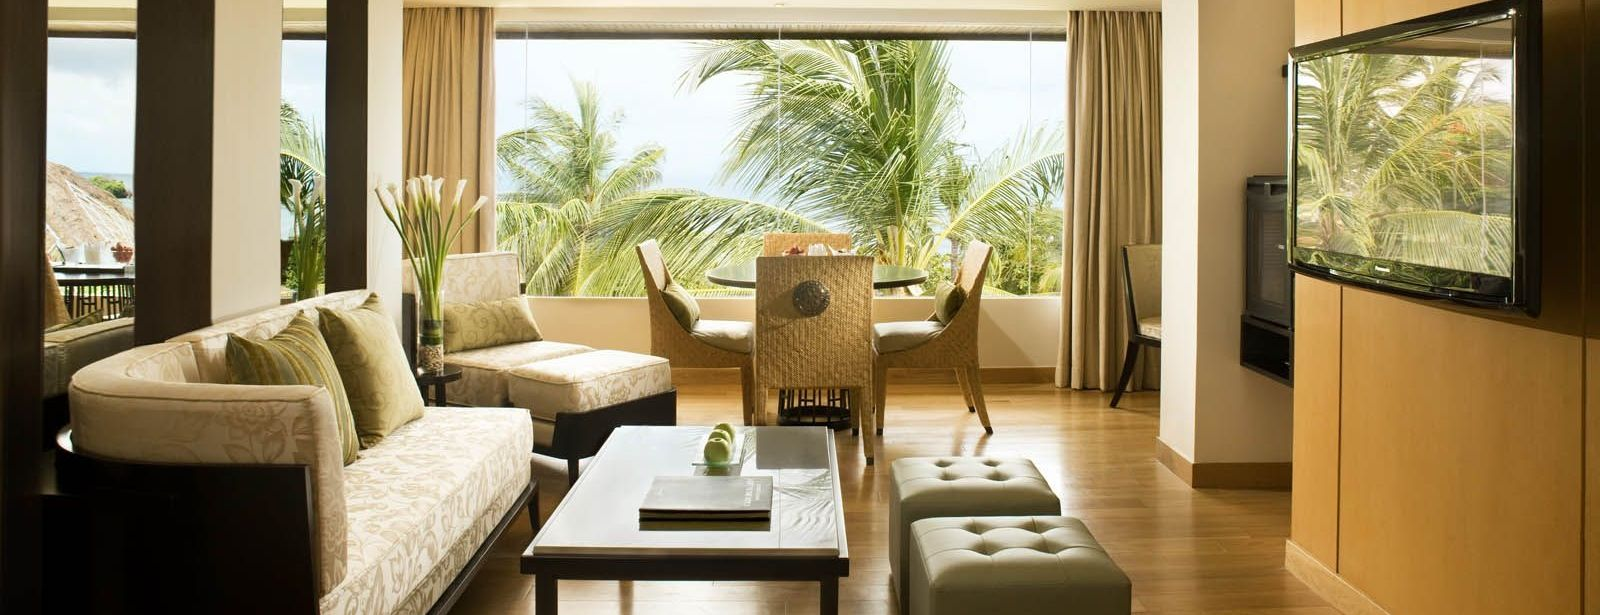 Two Bedroom suite Bali